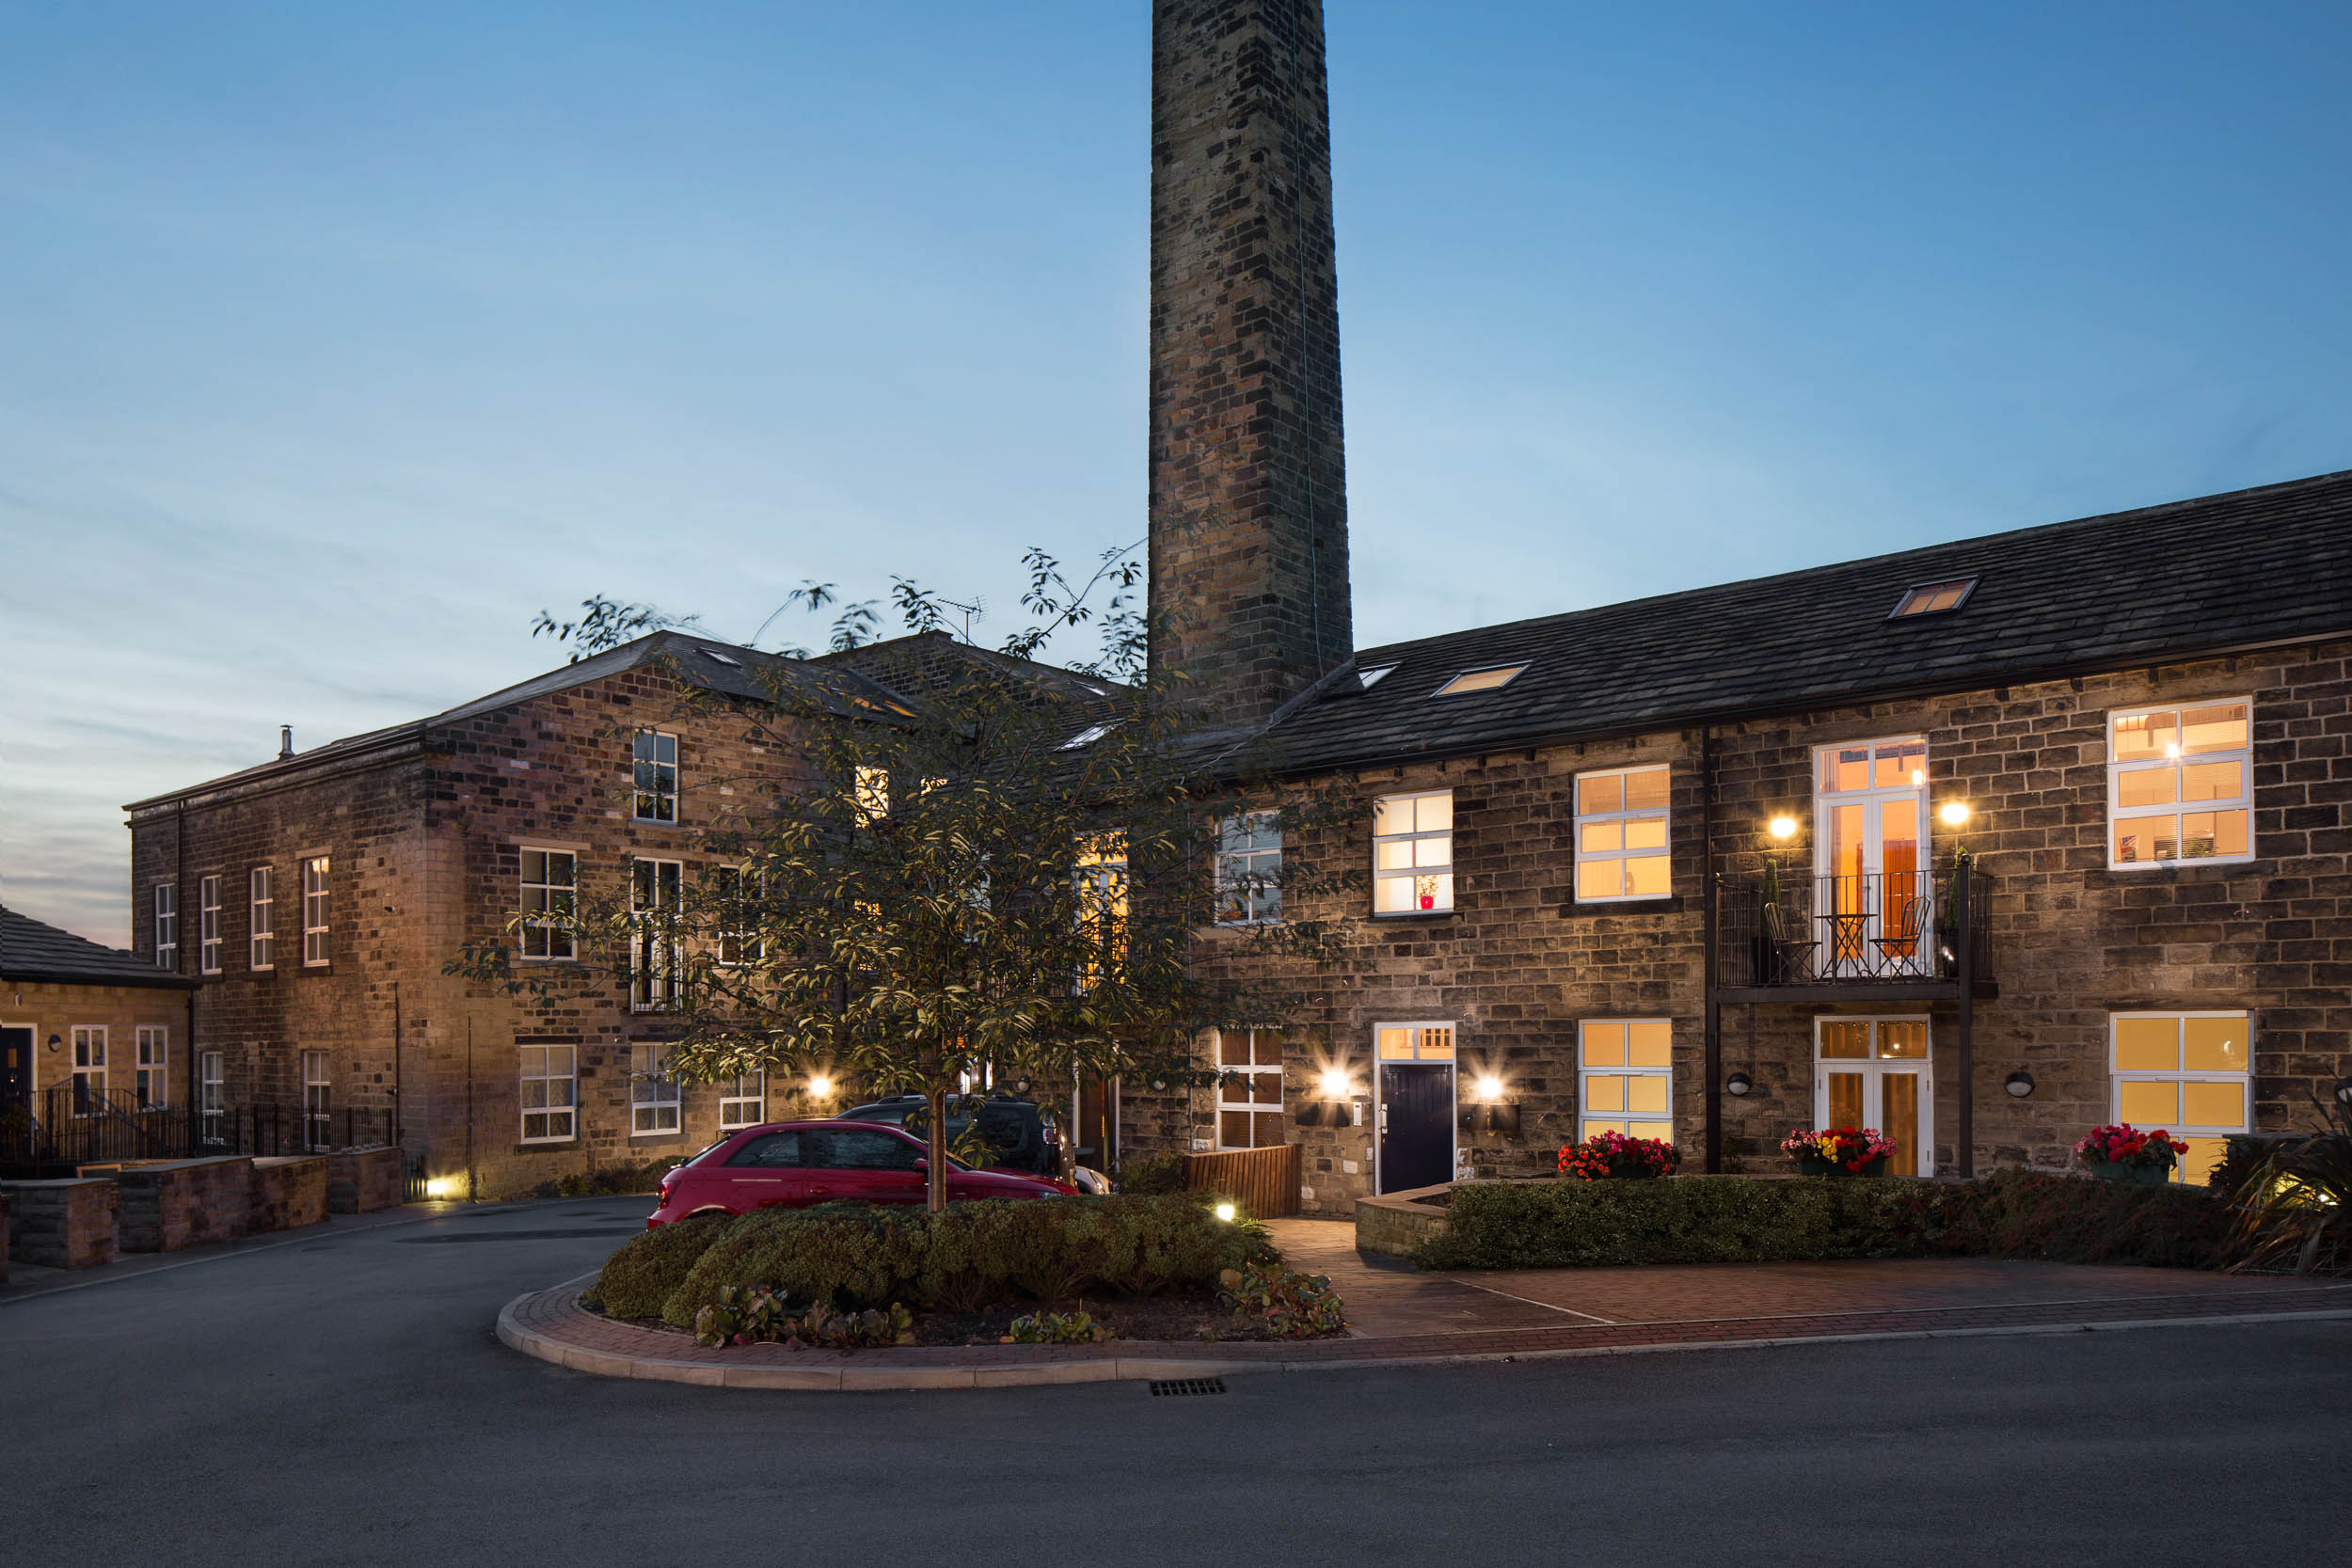 Airedale Mills, Bingley - Residential Twilight Exterior Photography